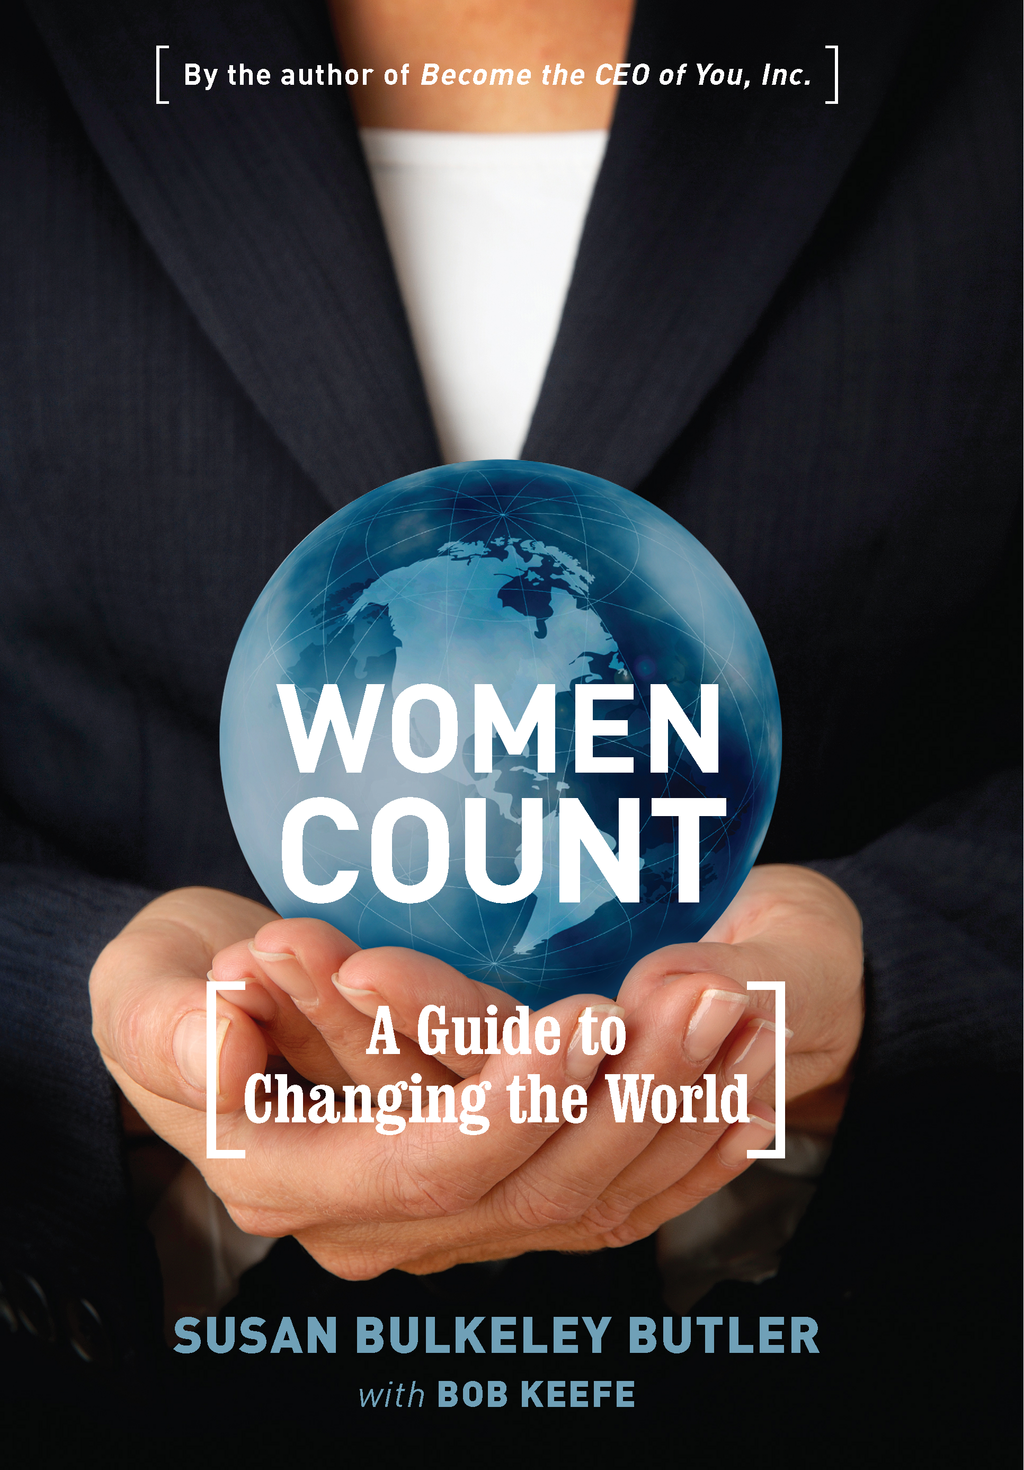 Women Count: A Guide to Changing the World